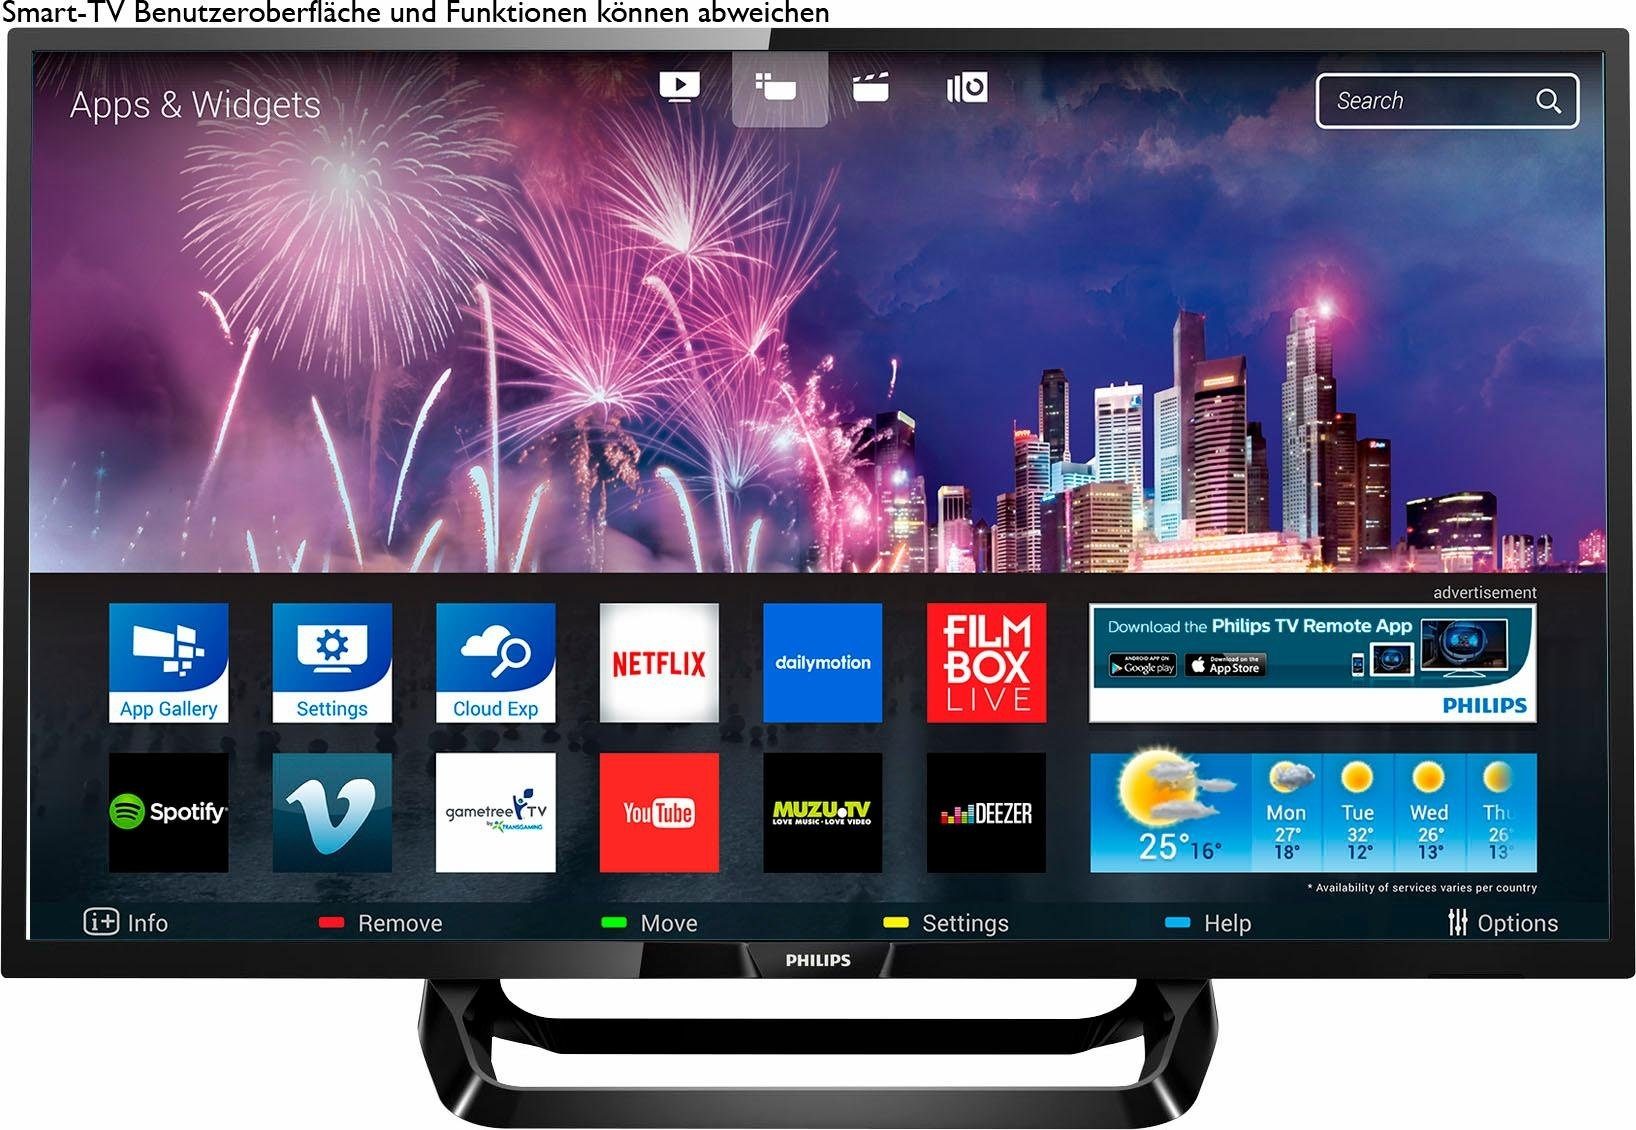 philips 32pfs5362 12 led tv 80 cm 32 inch full hd. Black Bedroom Furniture Sets. Home Design Ideas